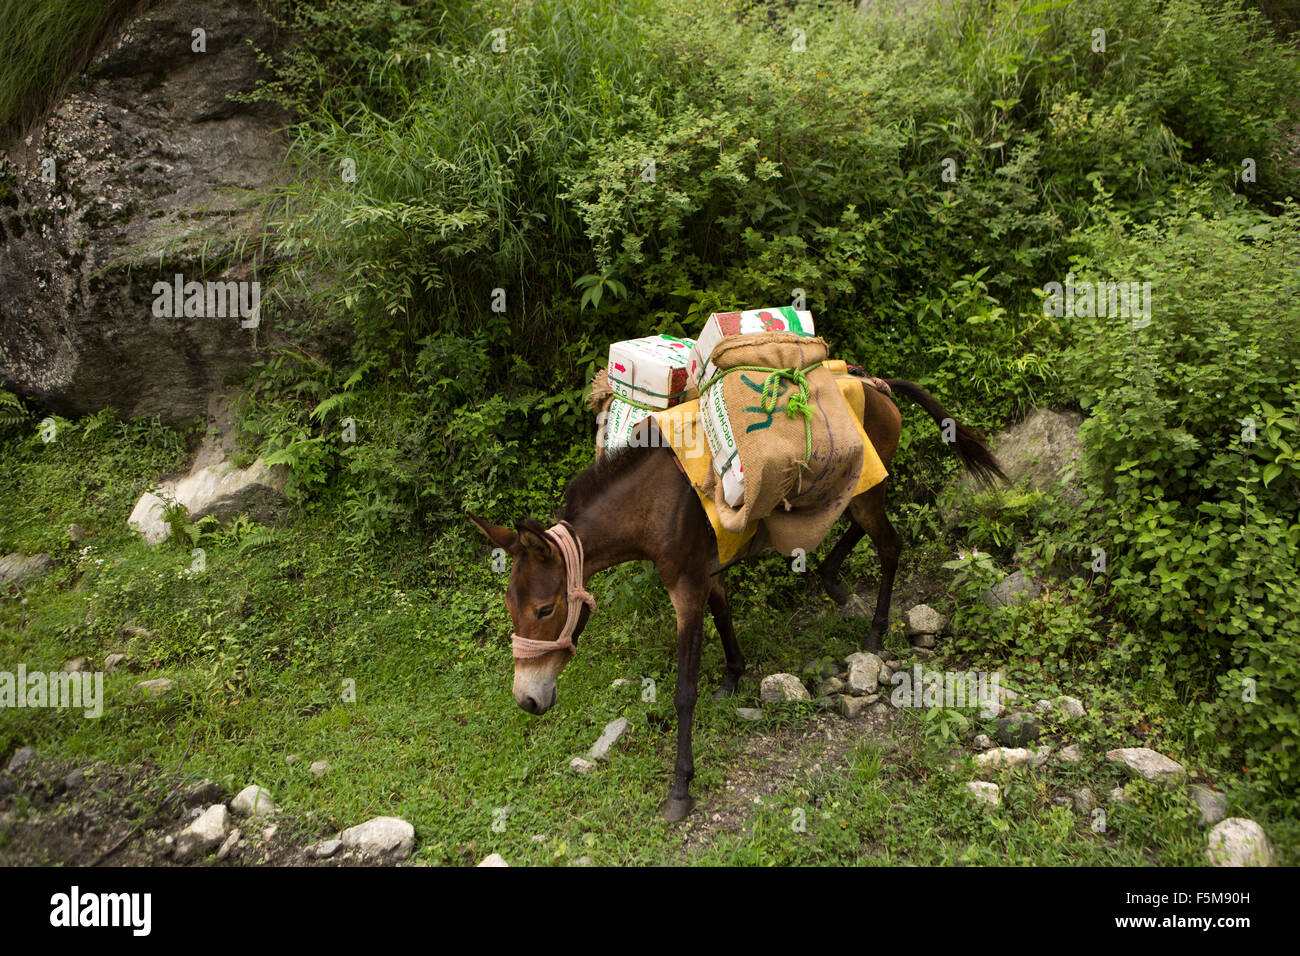 India, Himachal Pradesh, Shimla, pack horse bringing crop of apples from orchard to the road - Stock Image